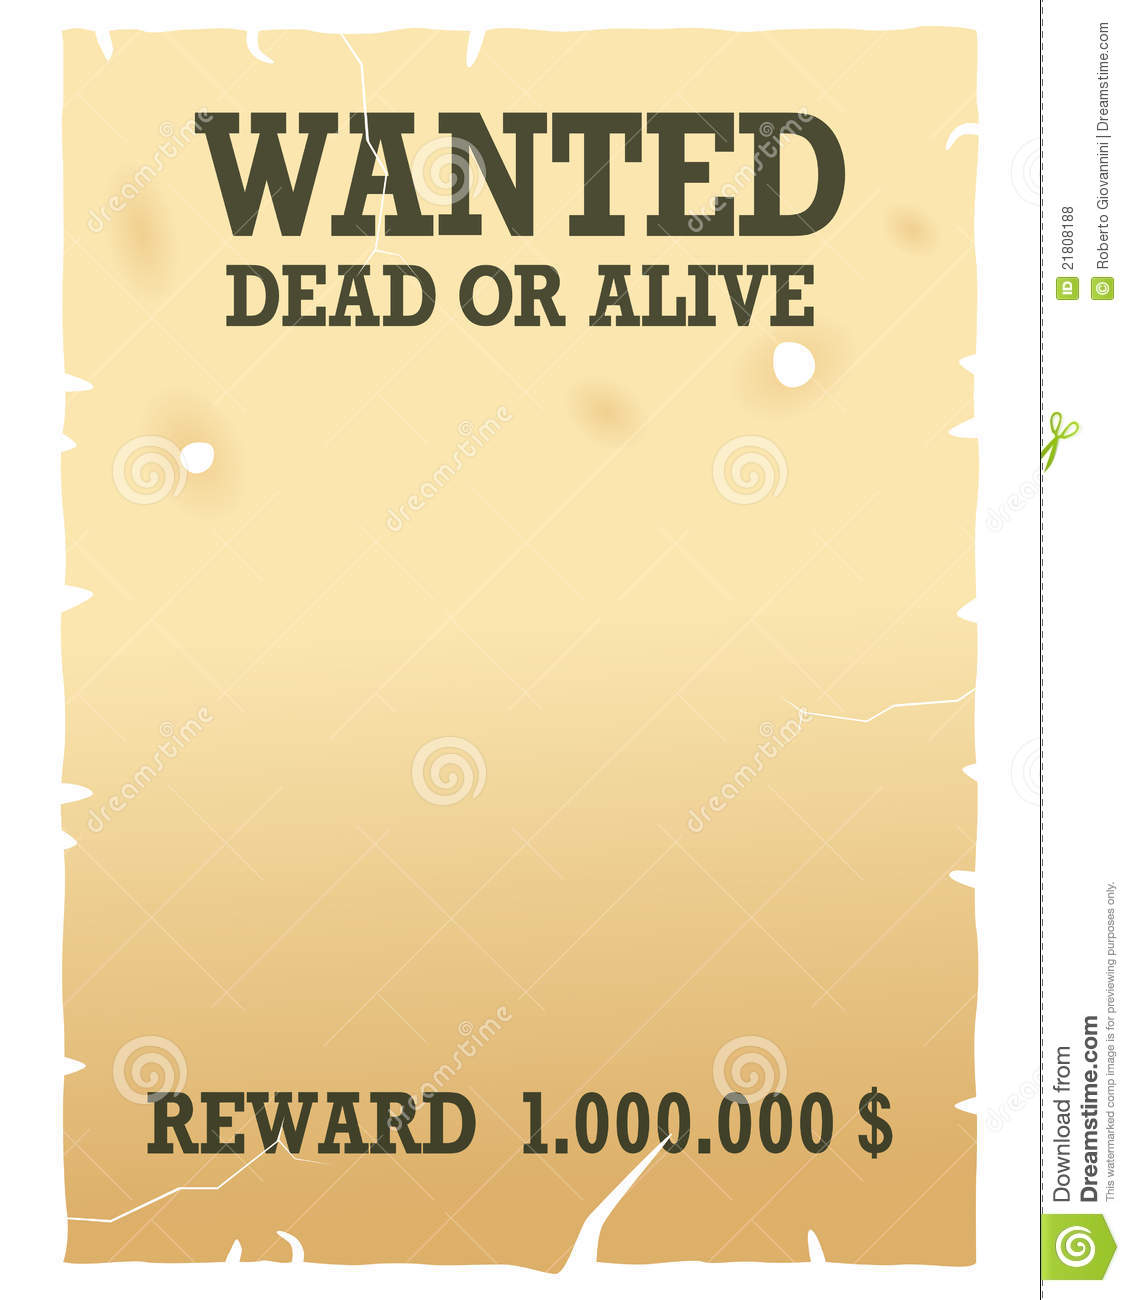 Wanted Dead Or Alive Poster Stock Vector Illustration Of Criminal